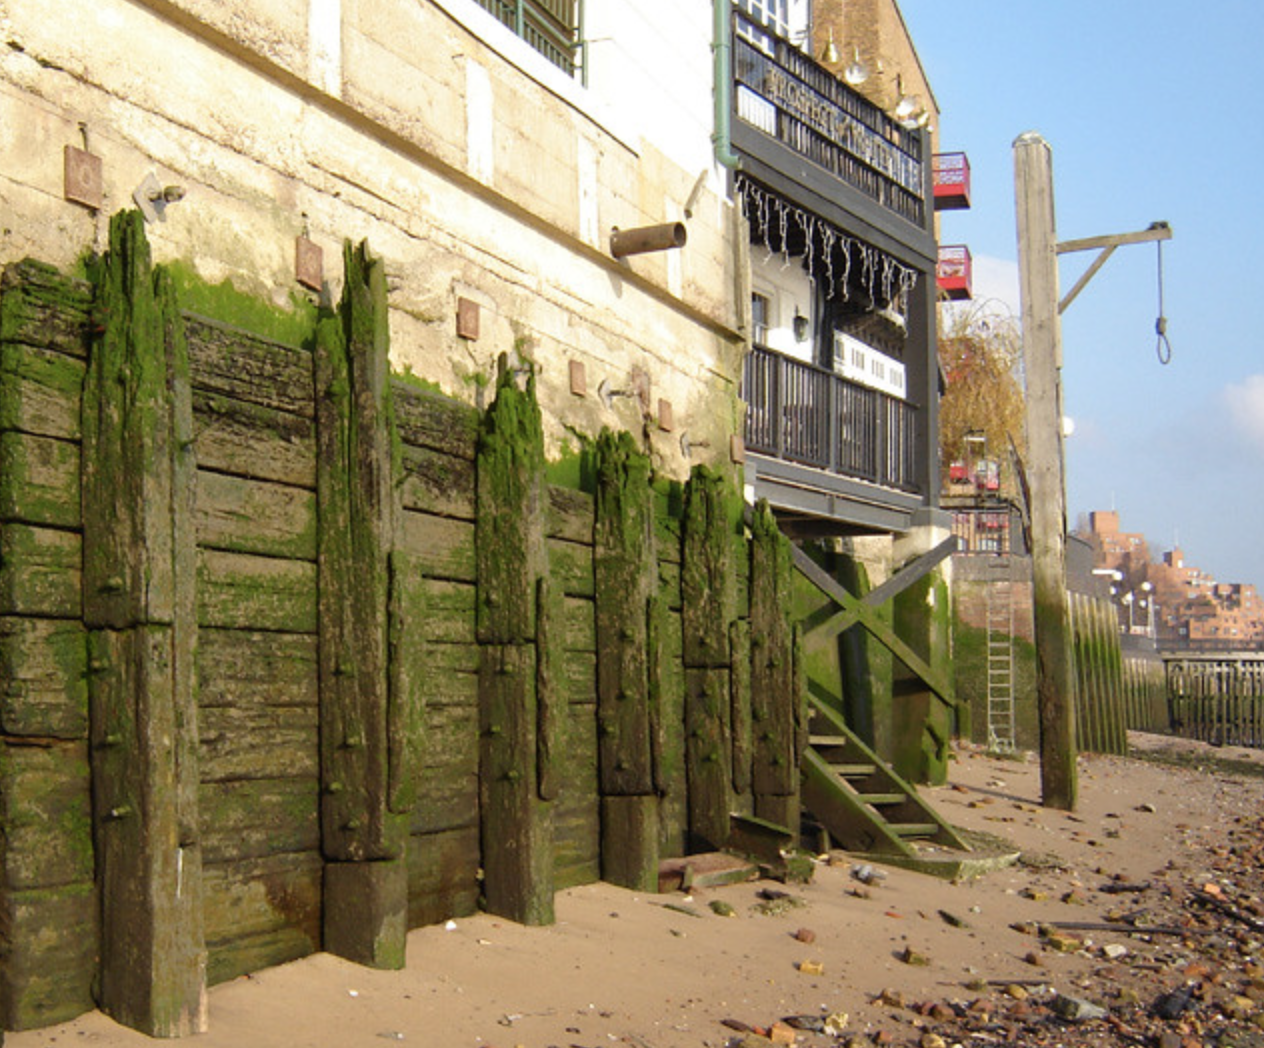 Replica gallows outside the Prospect of Whitby